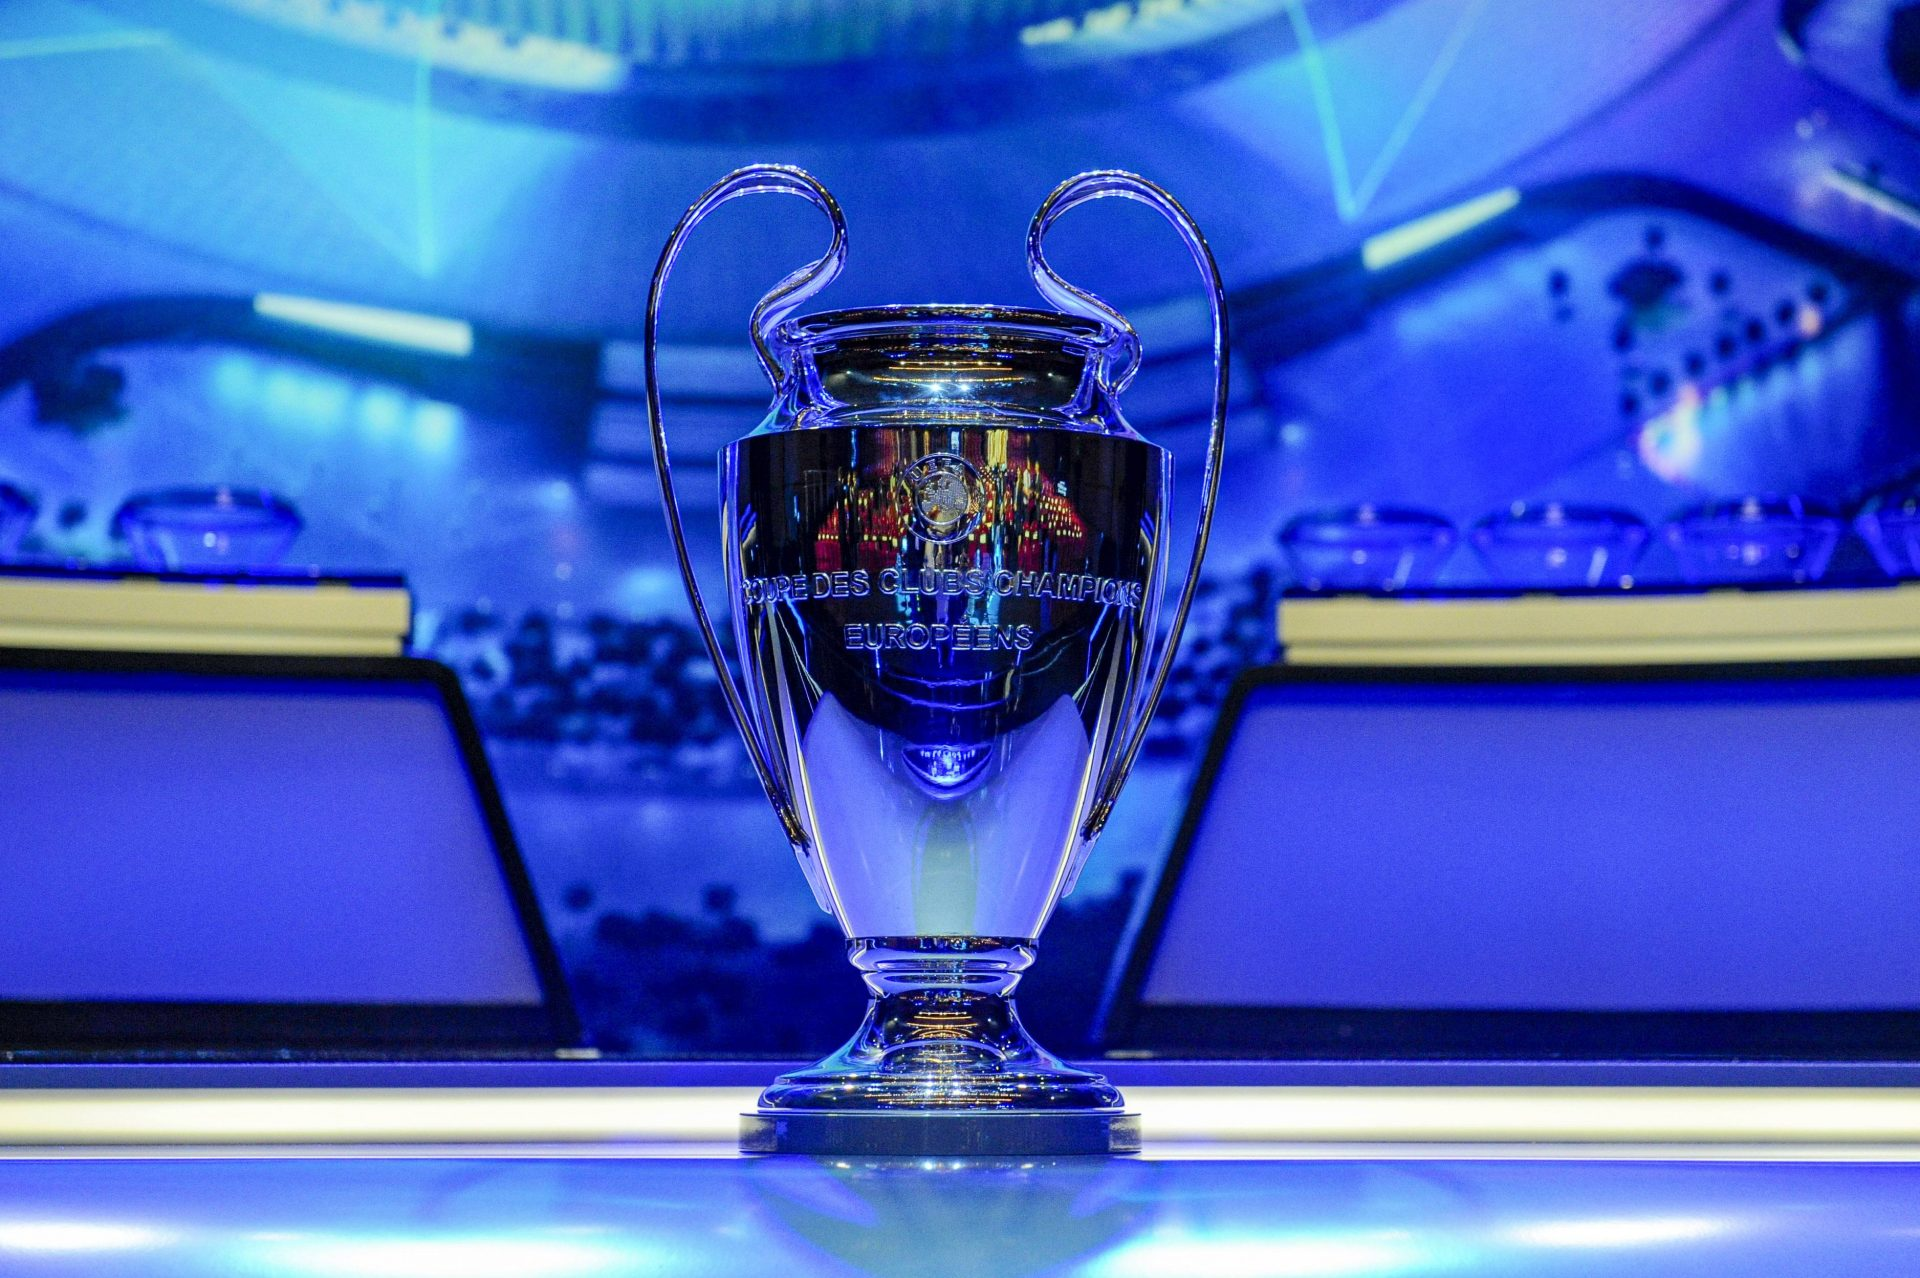 the draw for the Champions League